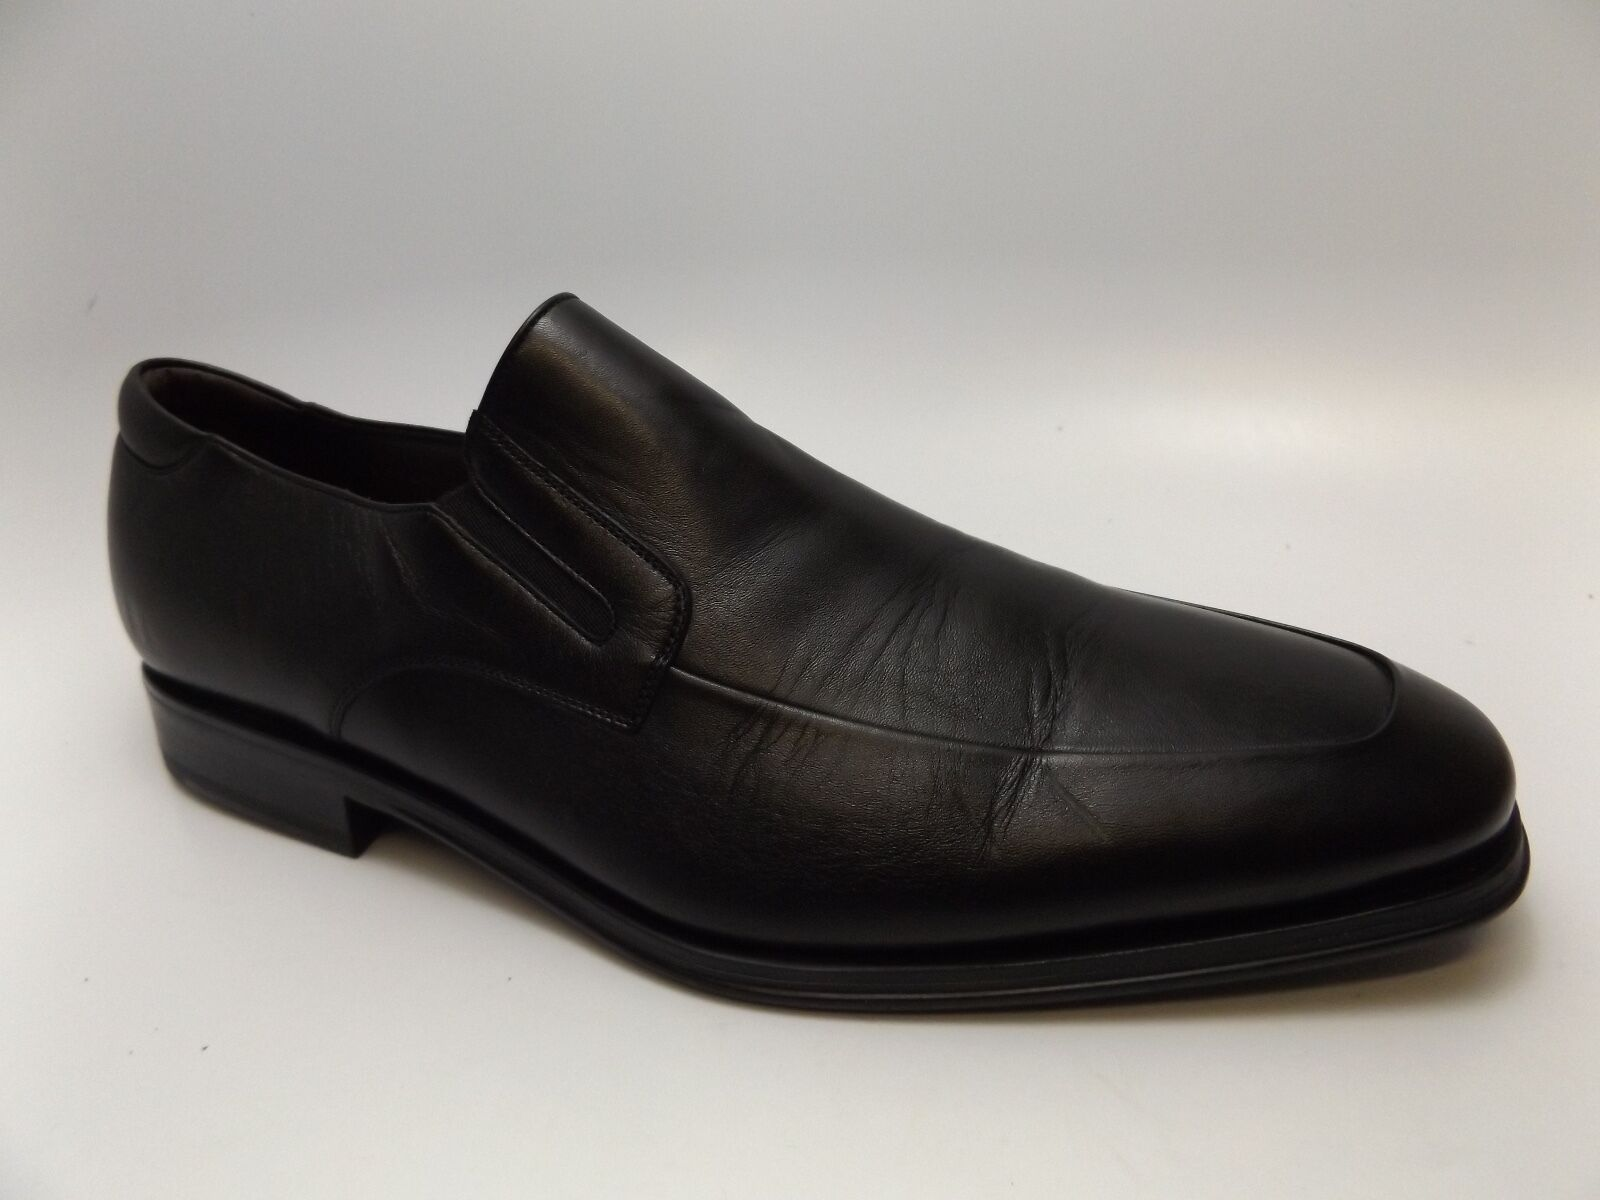 MAGNANNI   SZ Herren BLACK LEATHER SLIP-ON/Schuhe SZ  10.5 M PRE OWNED - D4156 a0f138